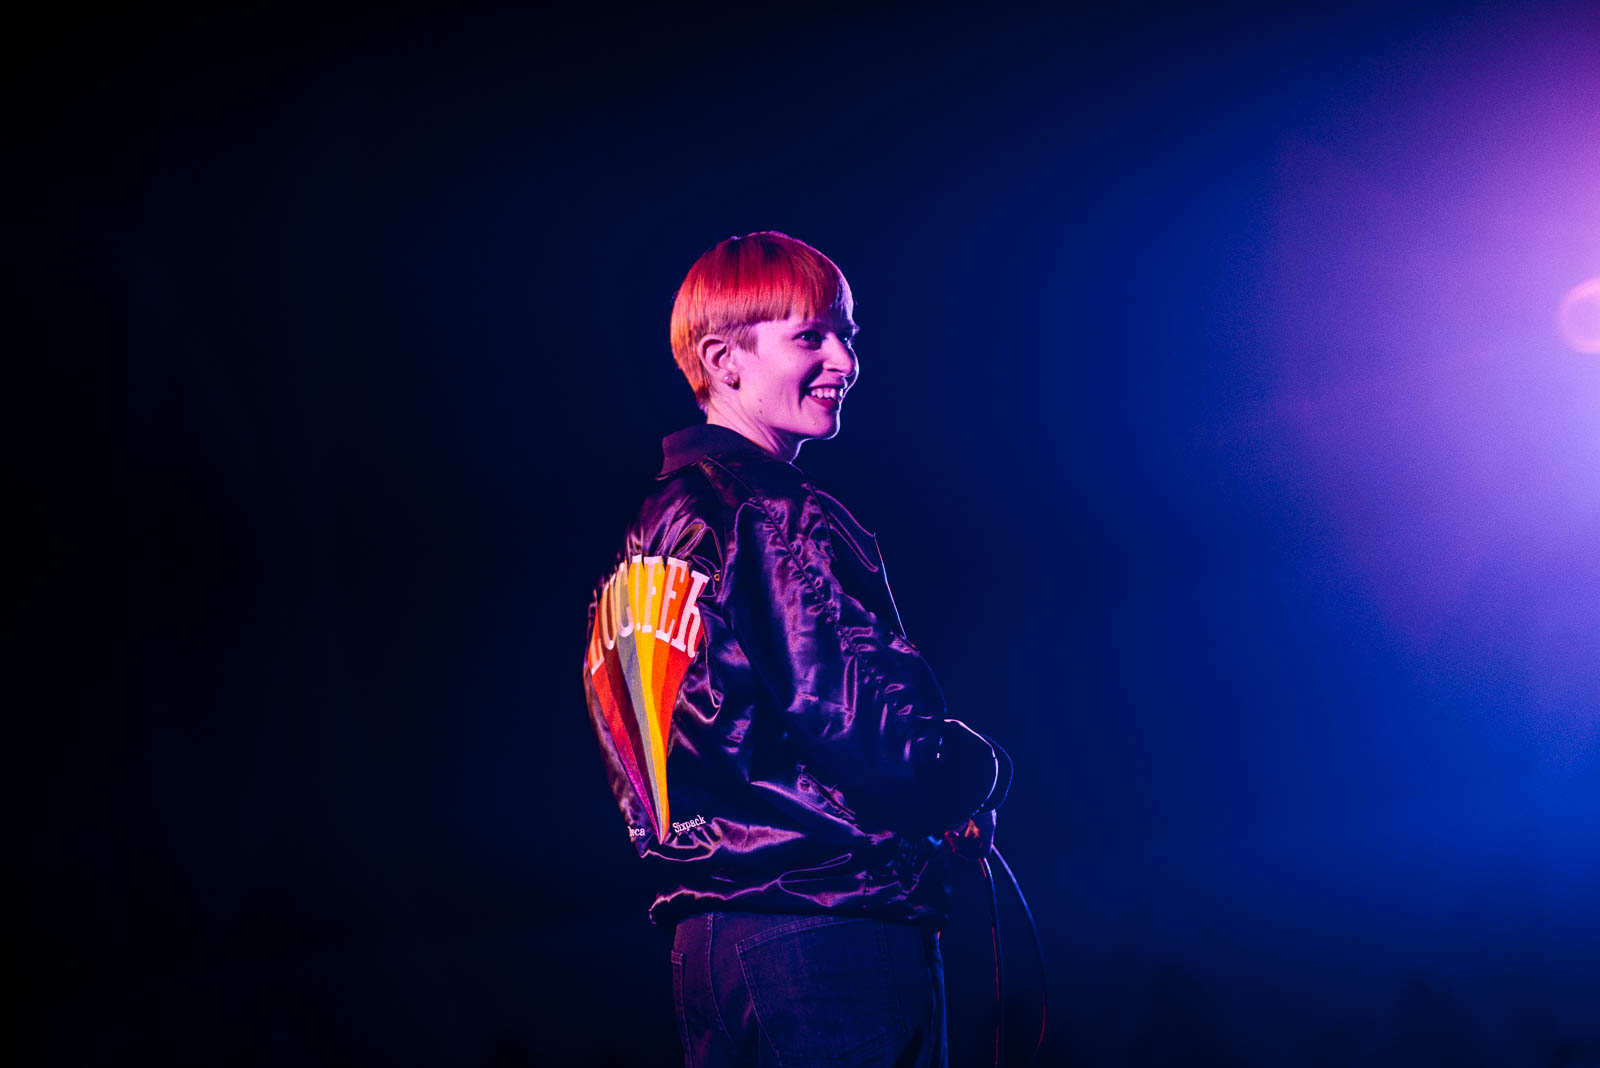 Jenny Hval at MoMA PS1 on Saturday, March 17, 2018.